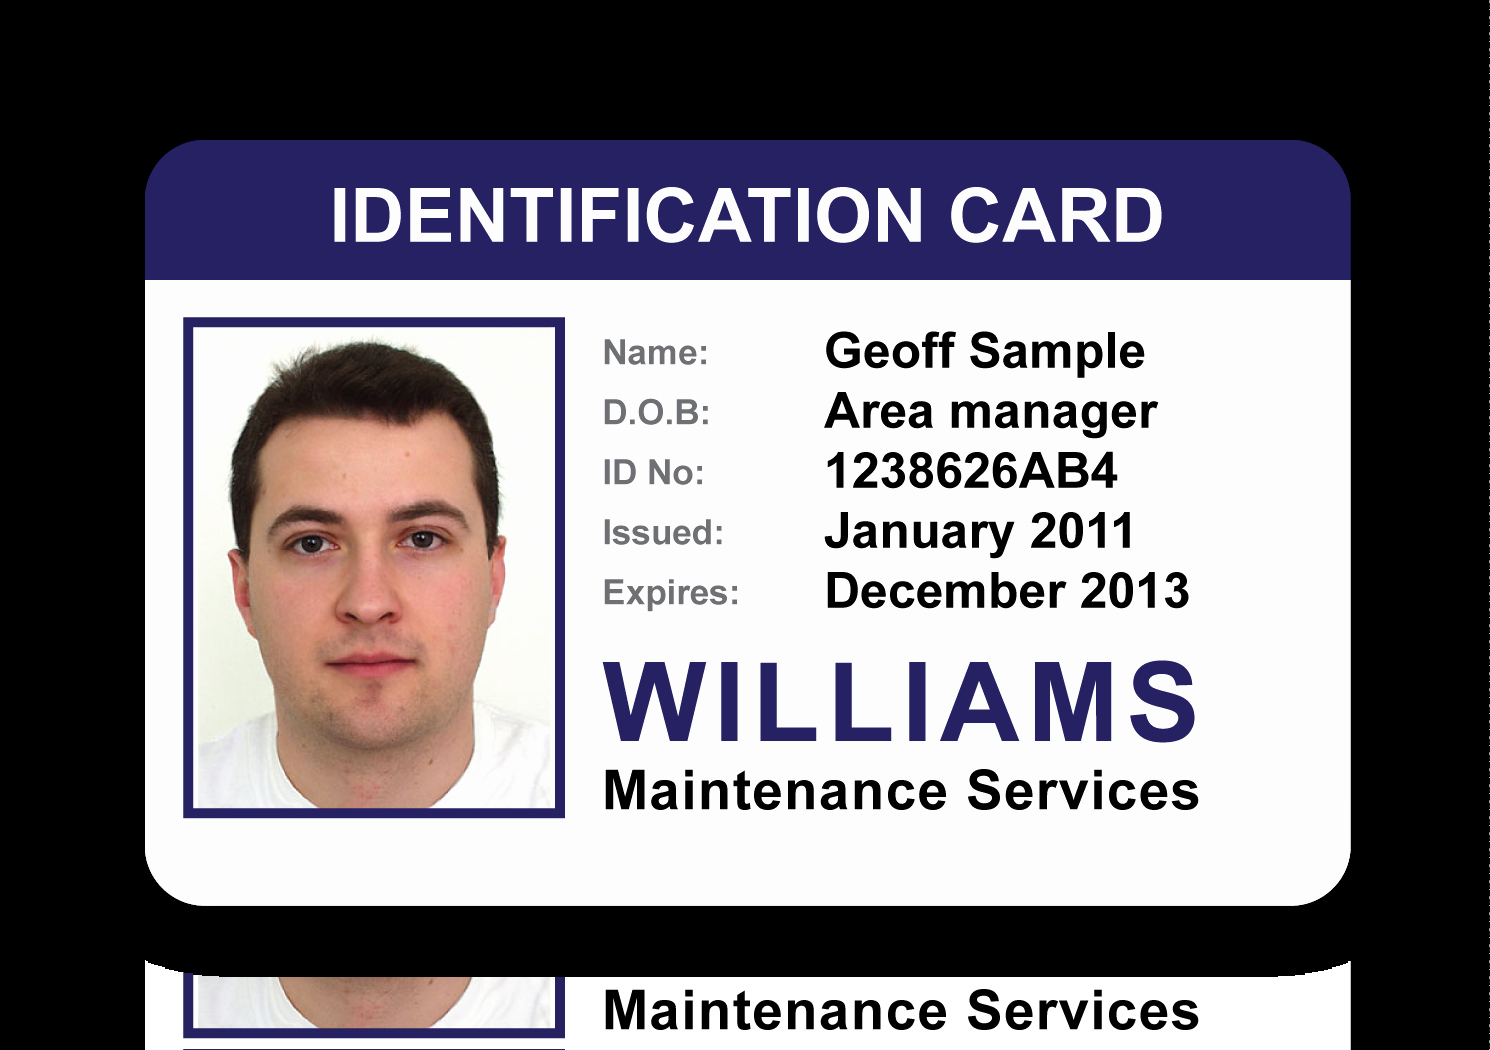 Free Id Card Template New Id Card Gallery An Image to View Larger Size – Go